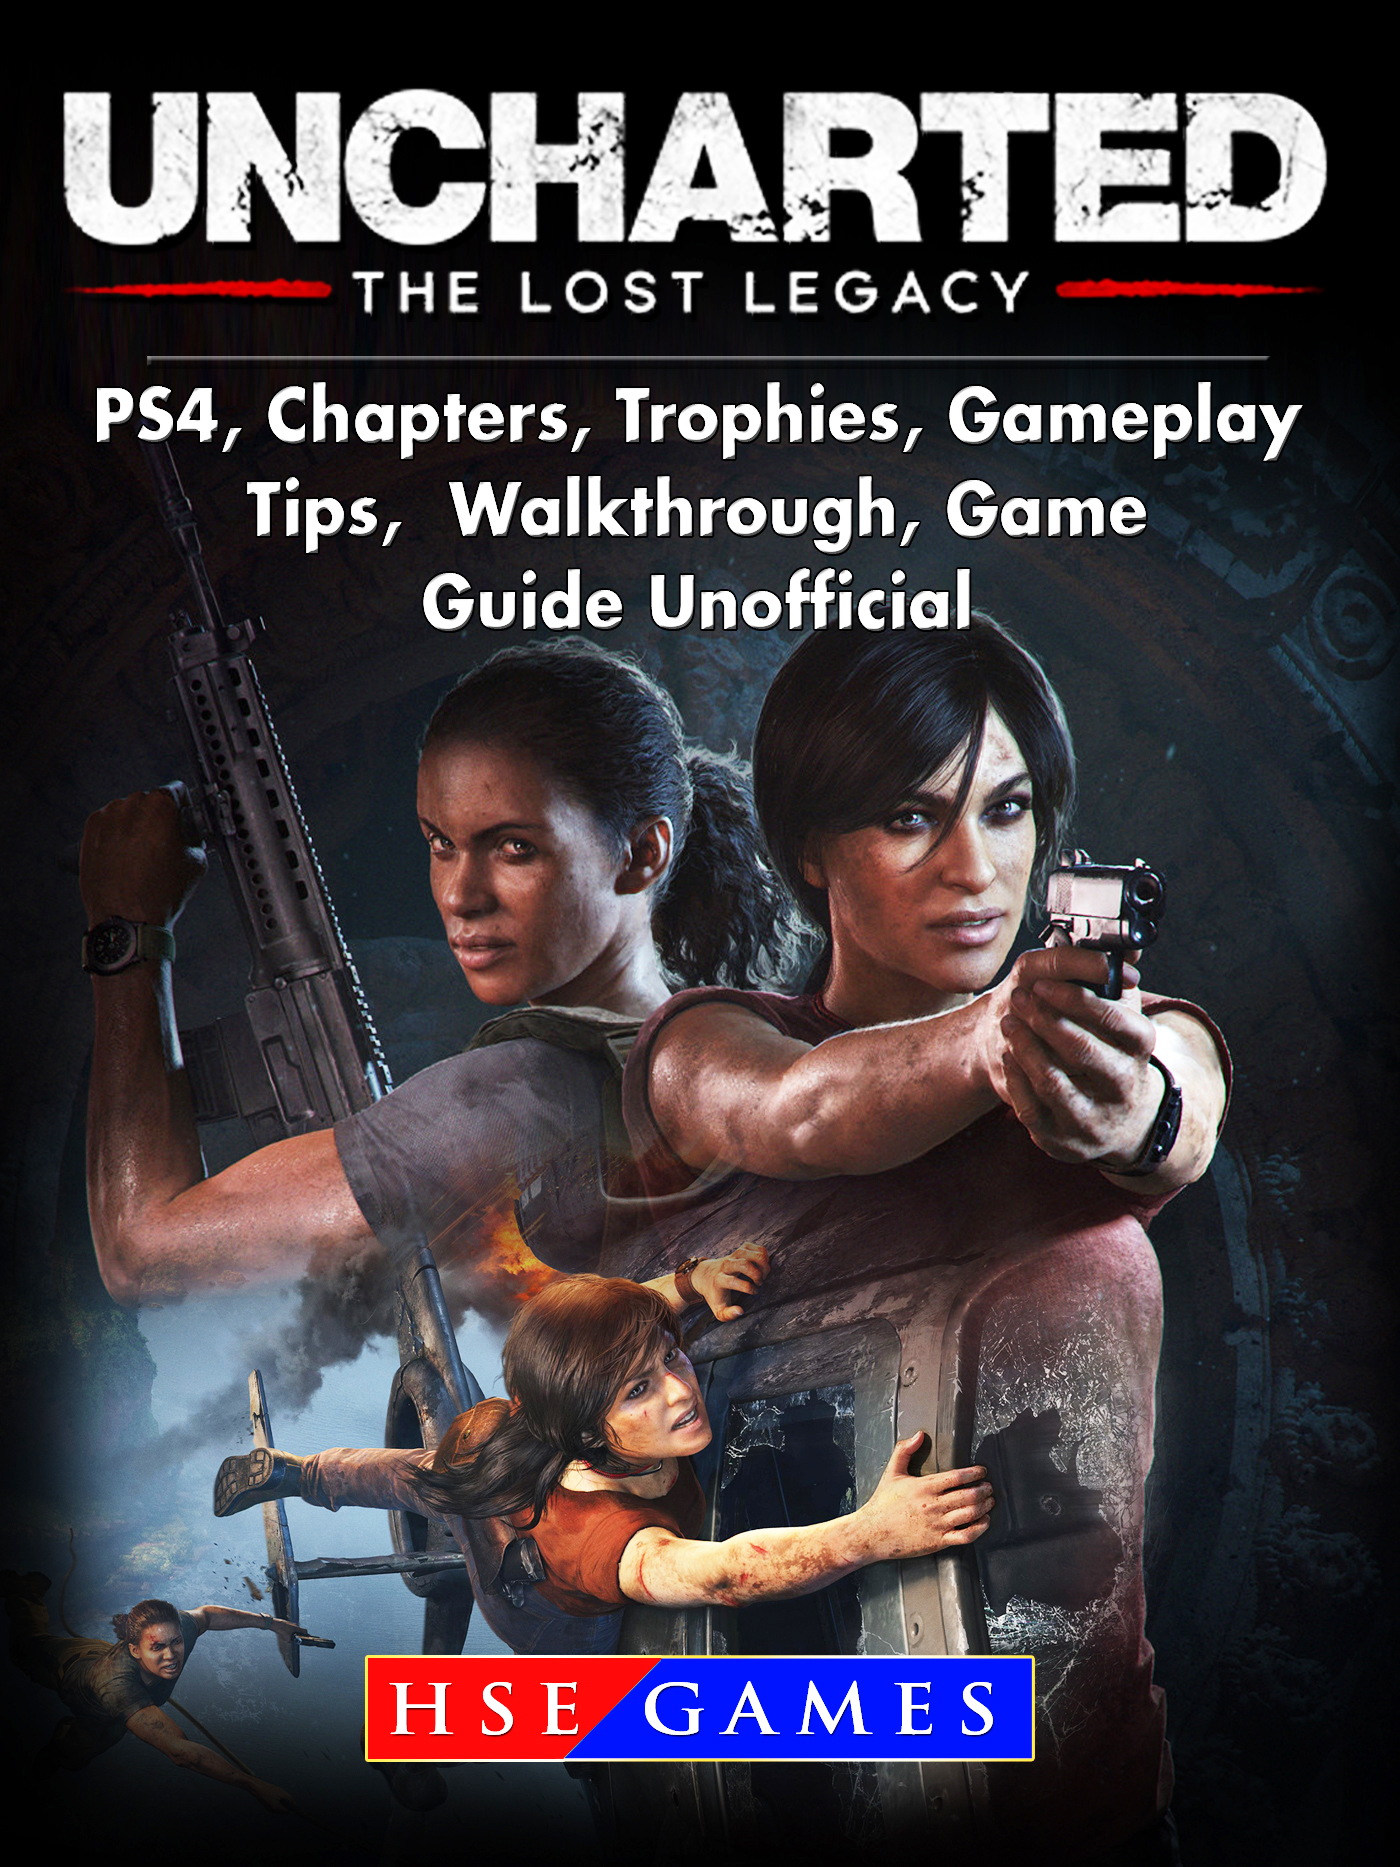 Uncharted The Lost Legacy PS4, Chapters, Trophies, Gameplay, Tips, Walkthrough, Game Guide Unofficial By HSE Games